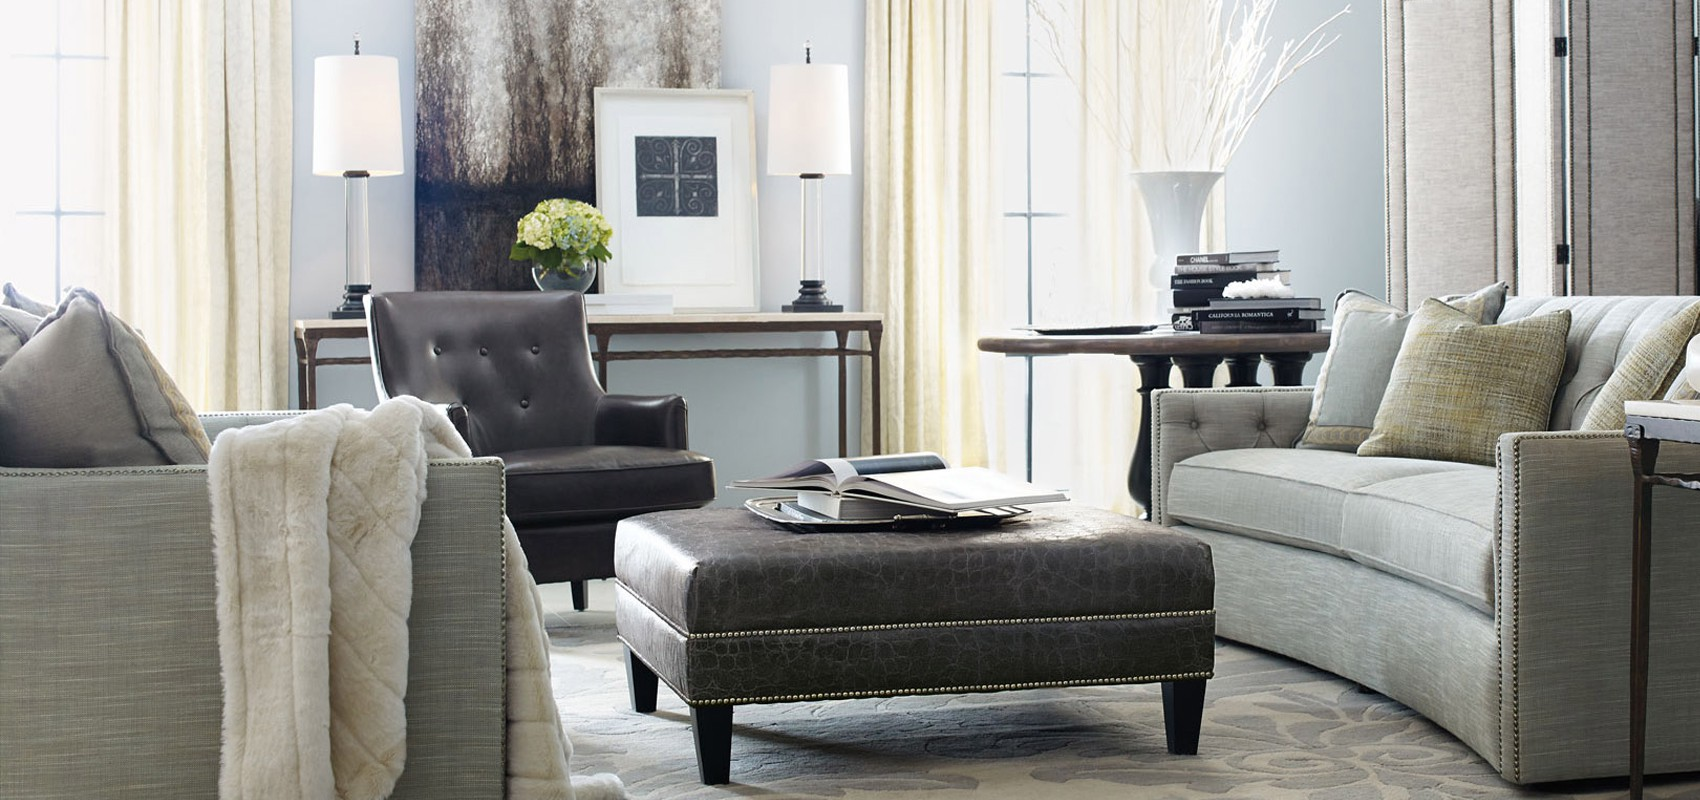 5 Multipurpose Furniture Pieces Great for Small Spaces